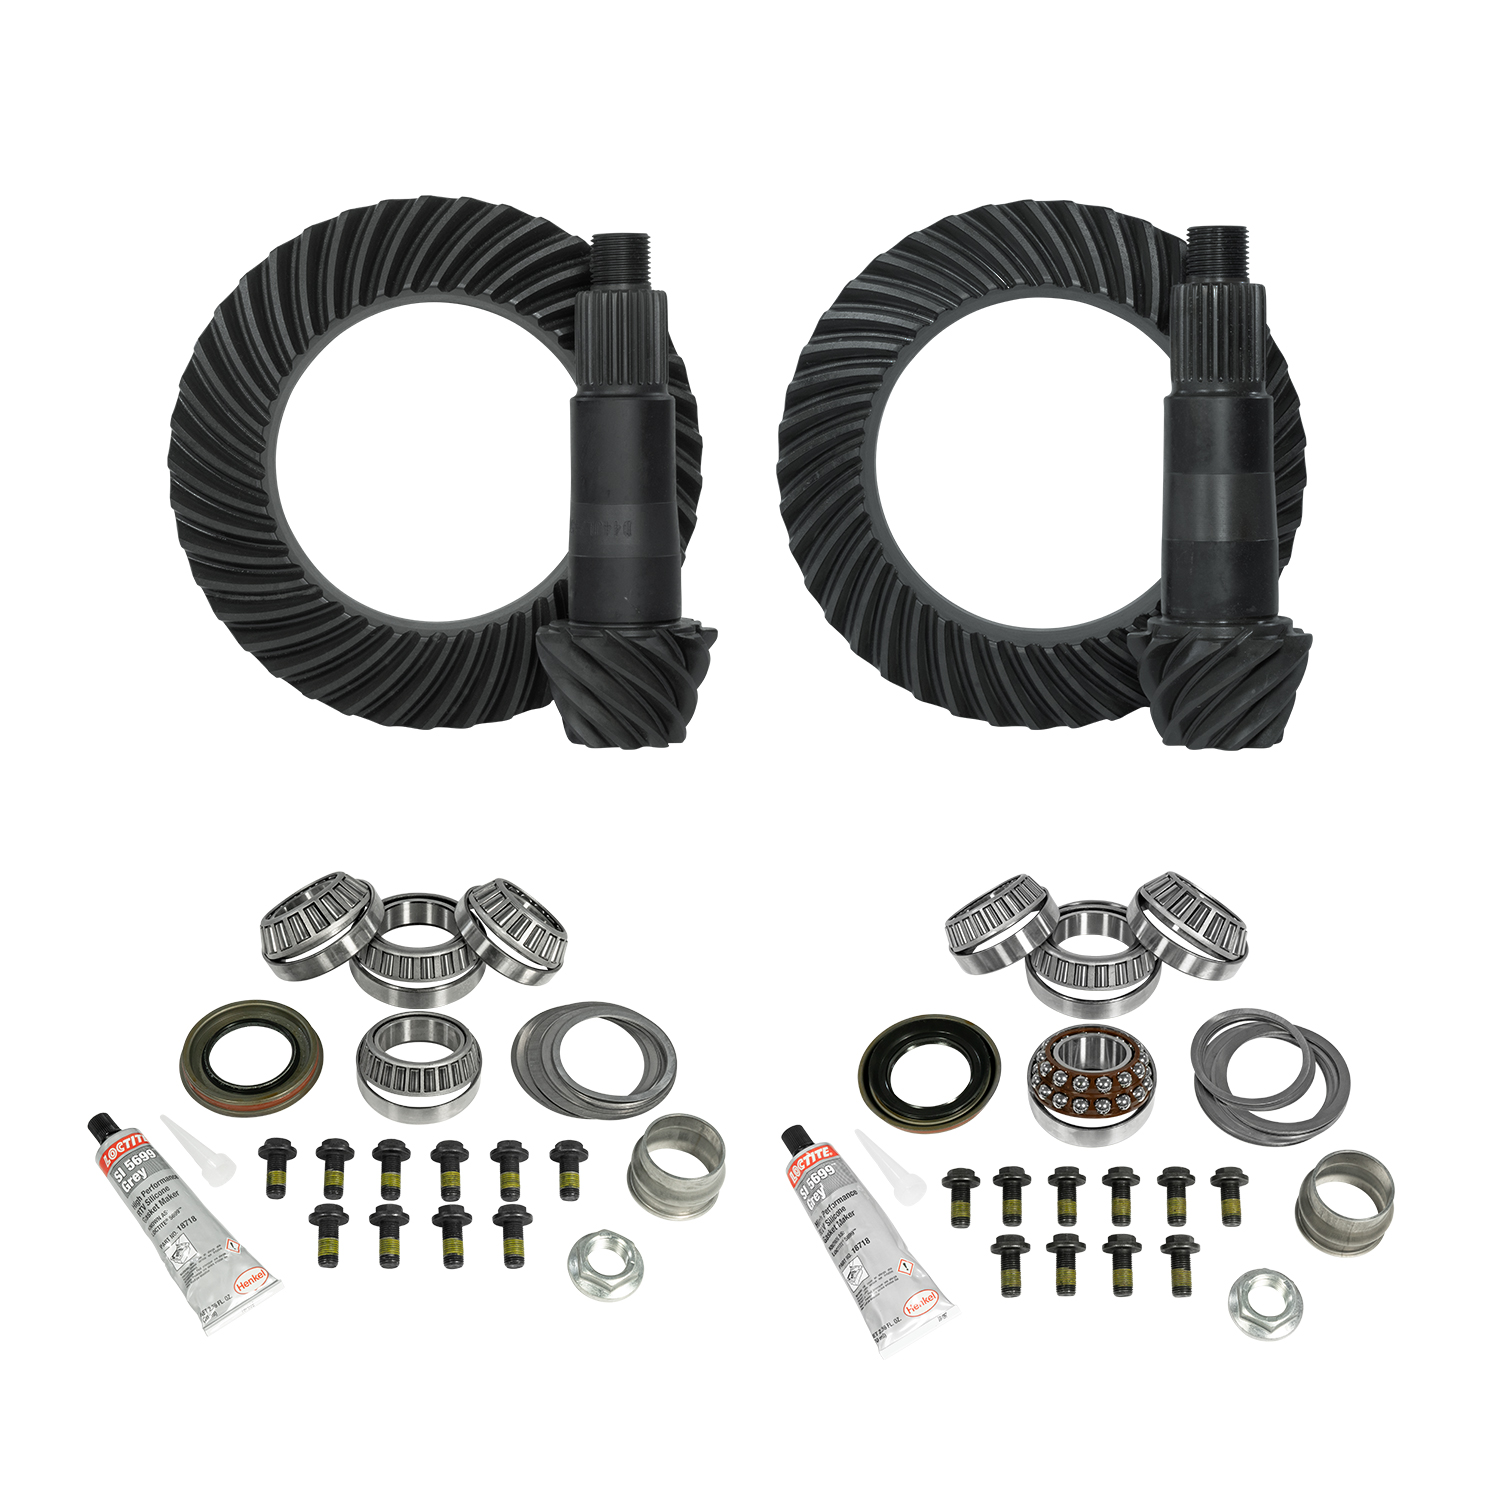 YGK068 - Yukon Complete Gear and Kit Package for JL and JT Jeep Rubicon, D44 Rear & D44 Front, 4:88 Gear Ratio